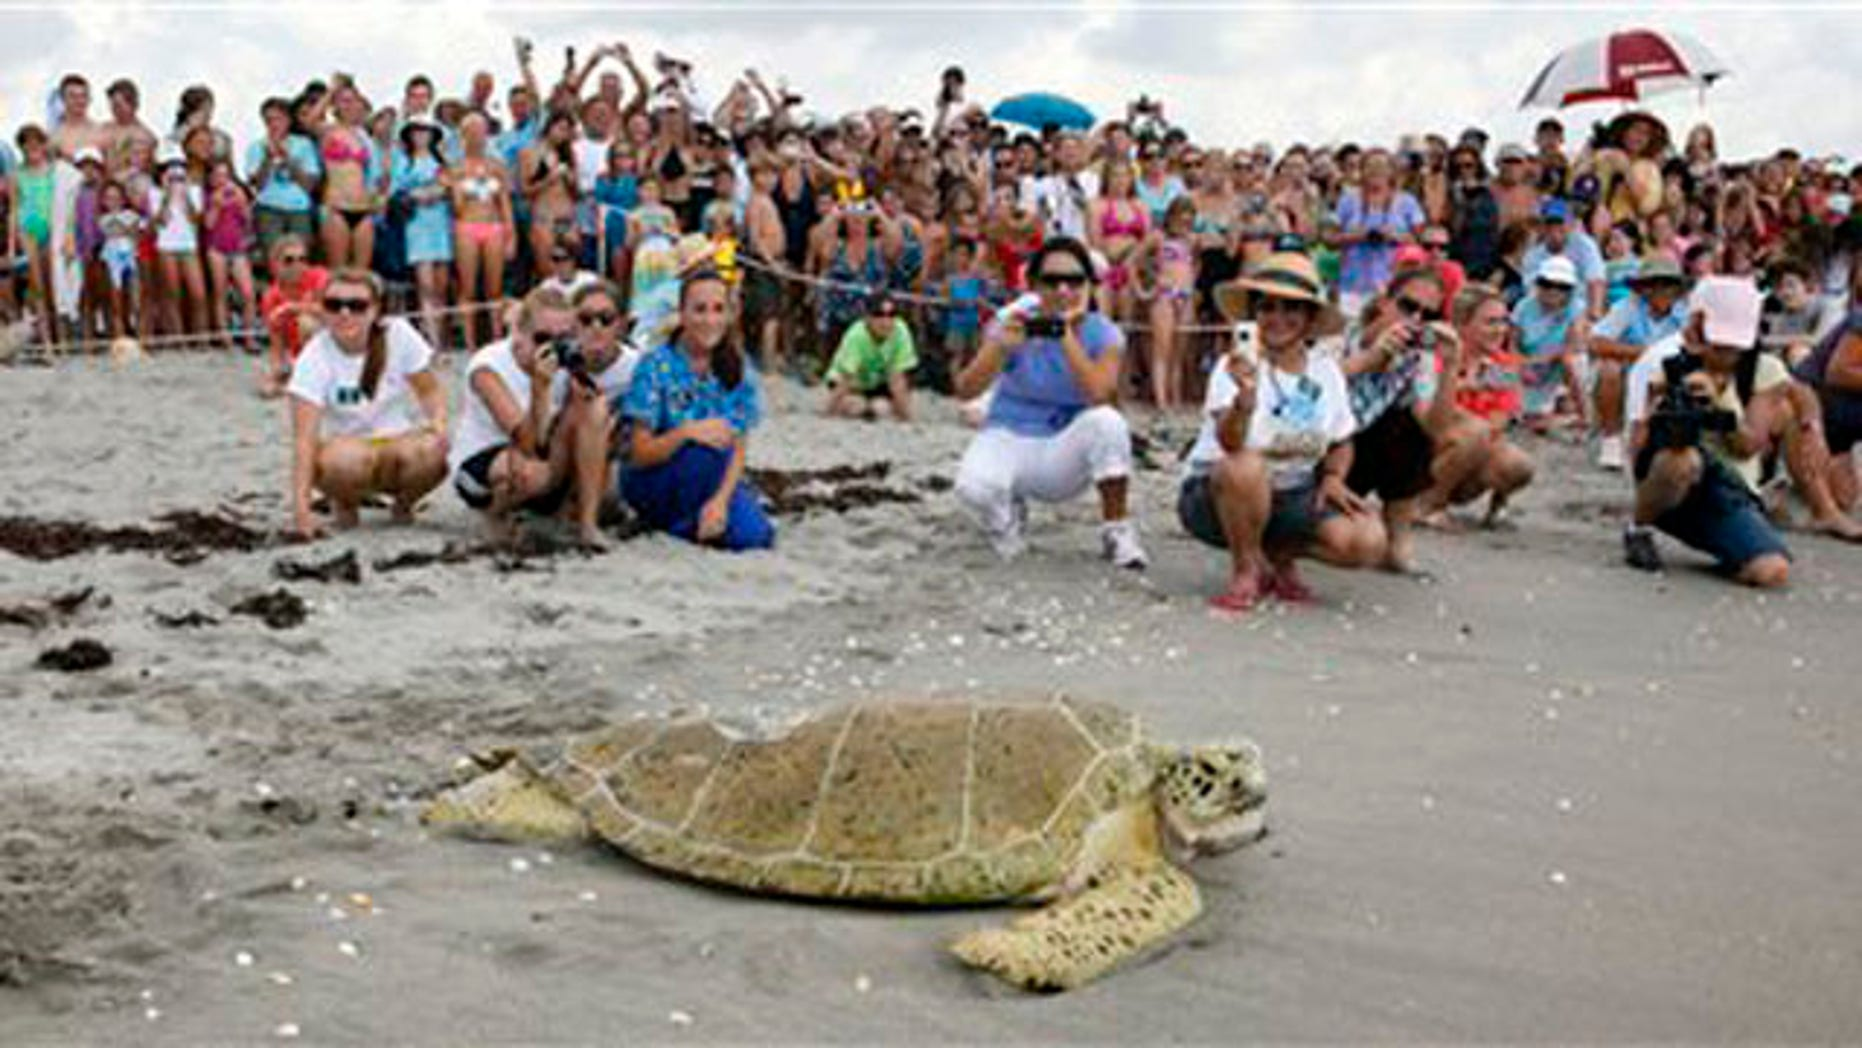 Crowds cheer as Andre the sea turtle is released back into the sea.